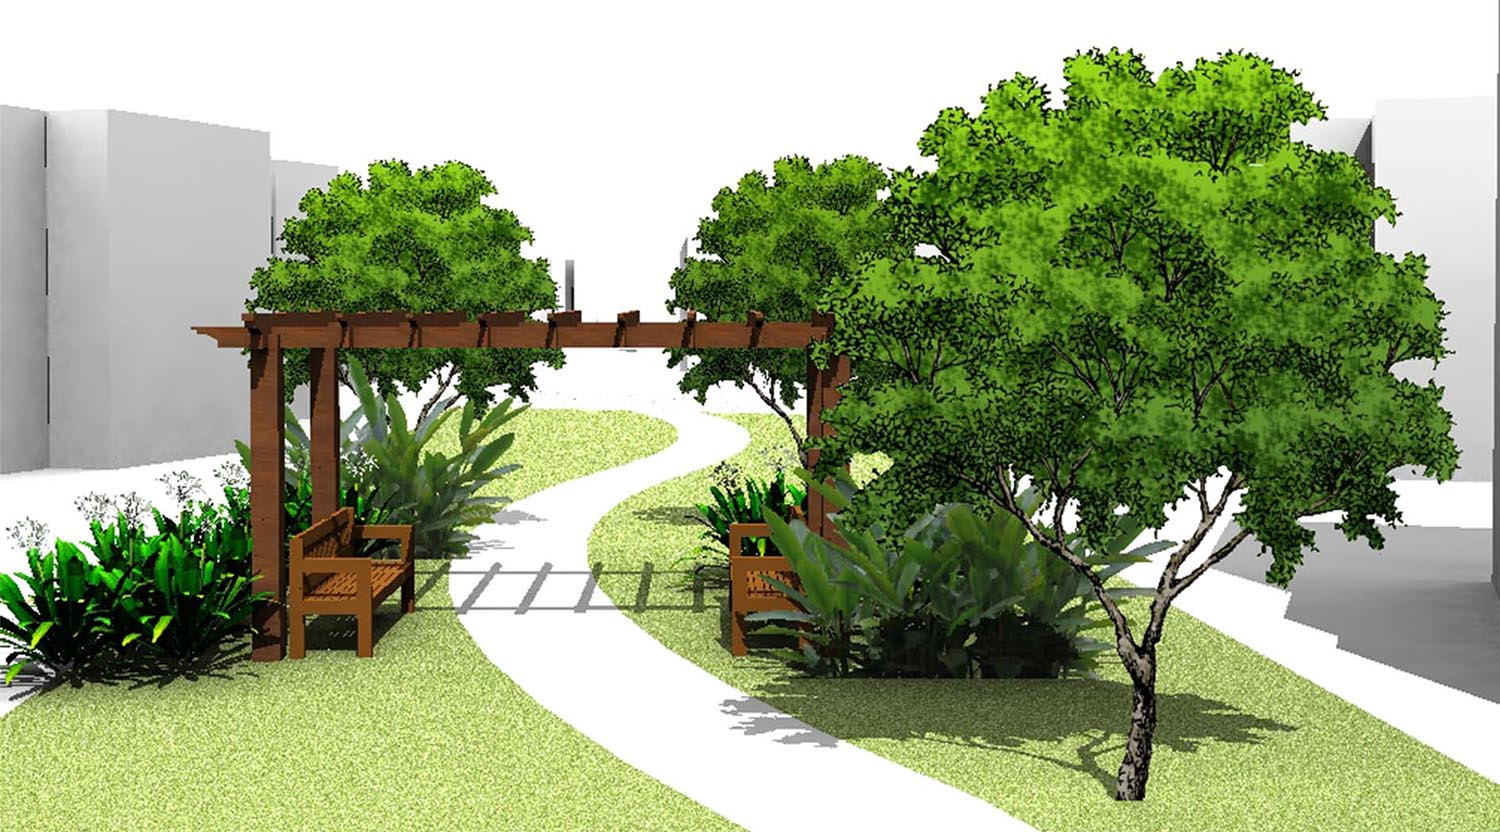 Lincoln Park - Pergola seating